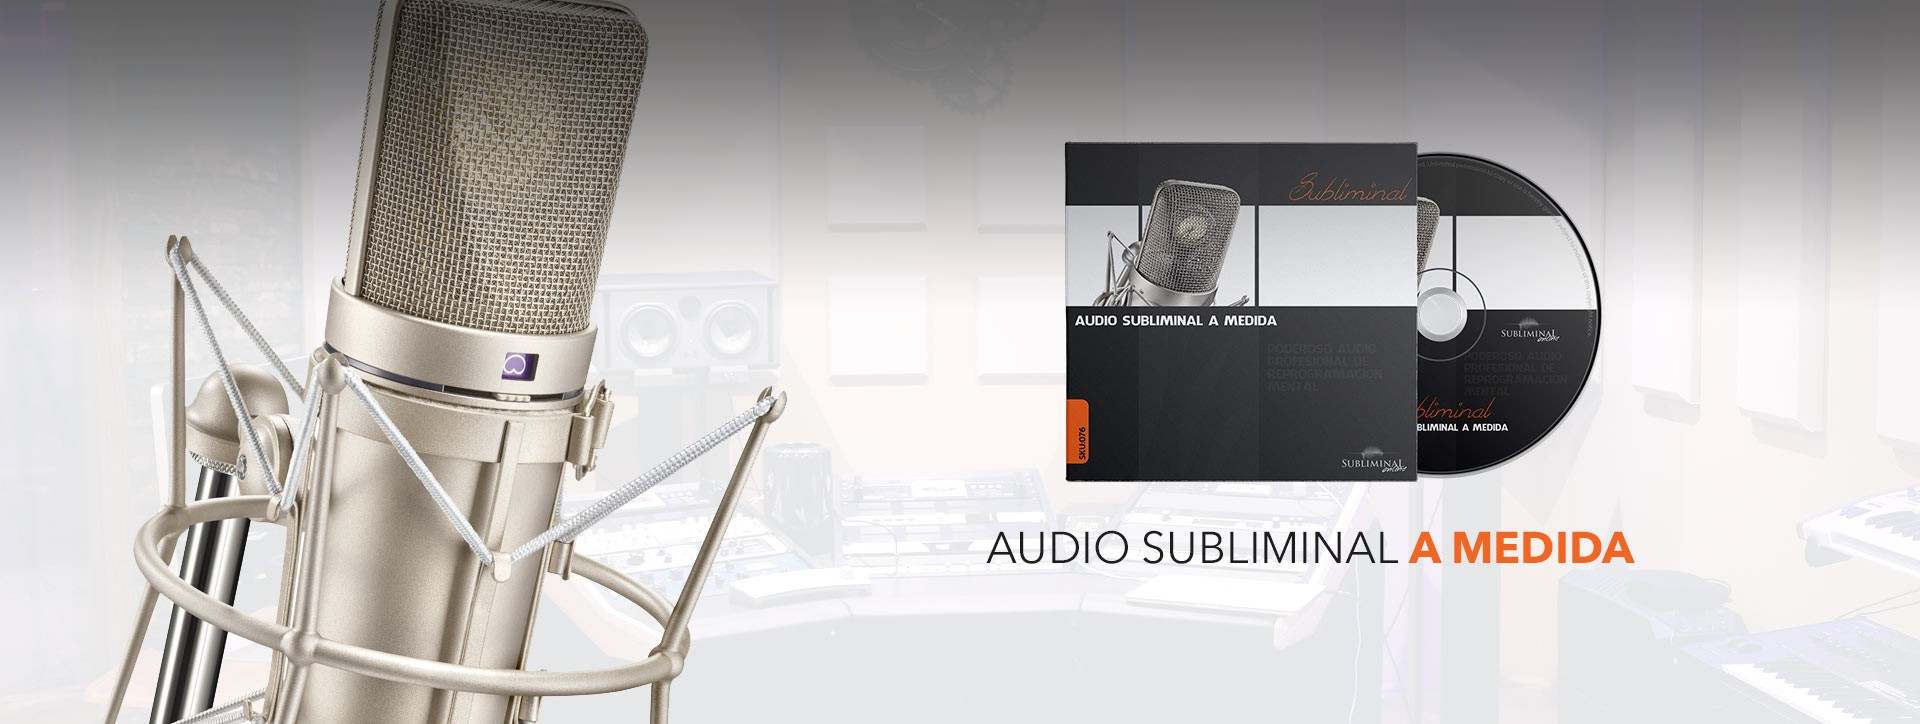 Audio a medida